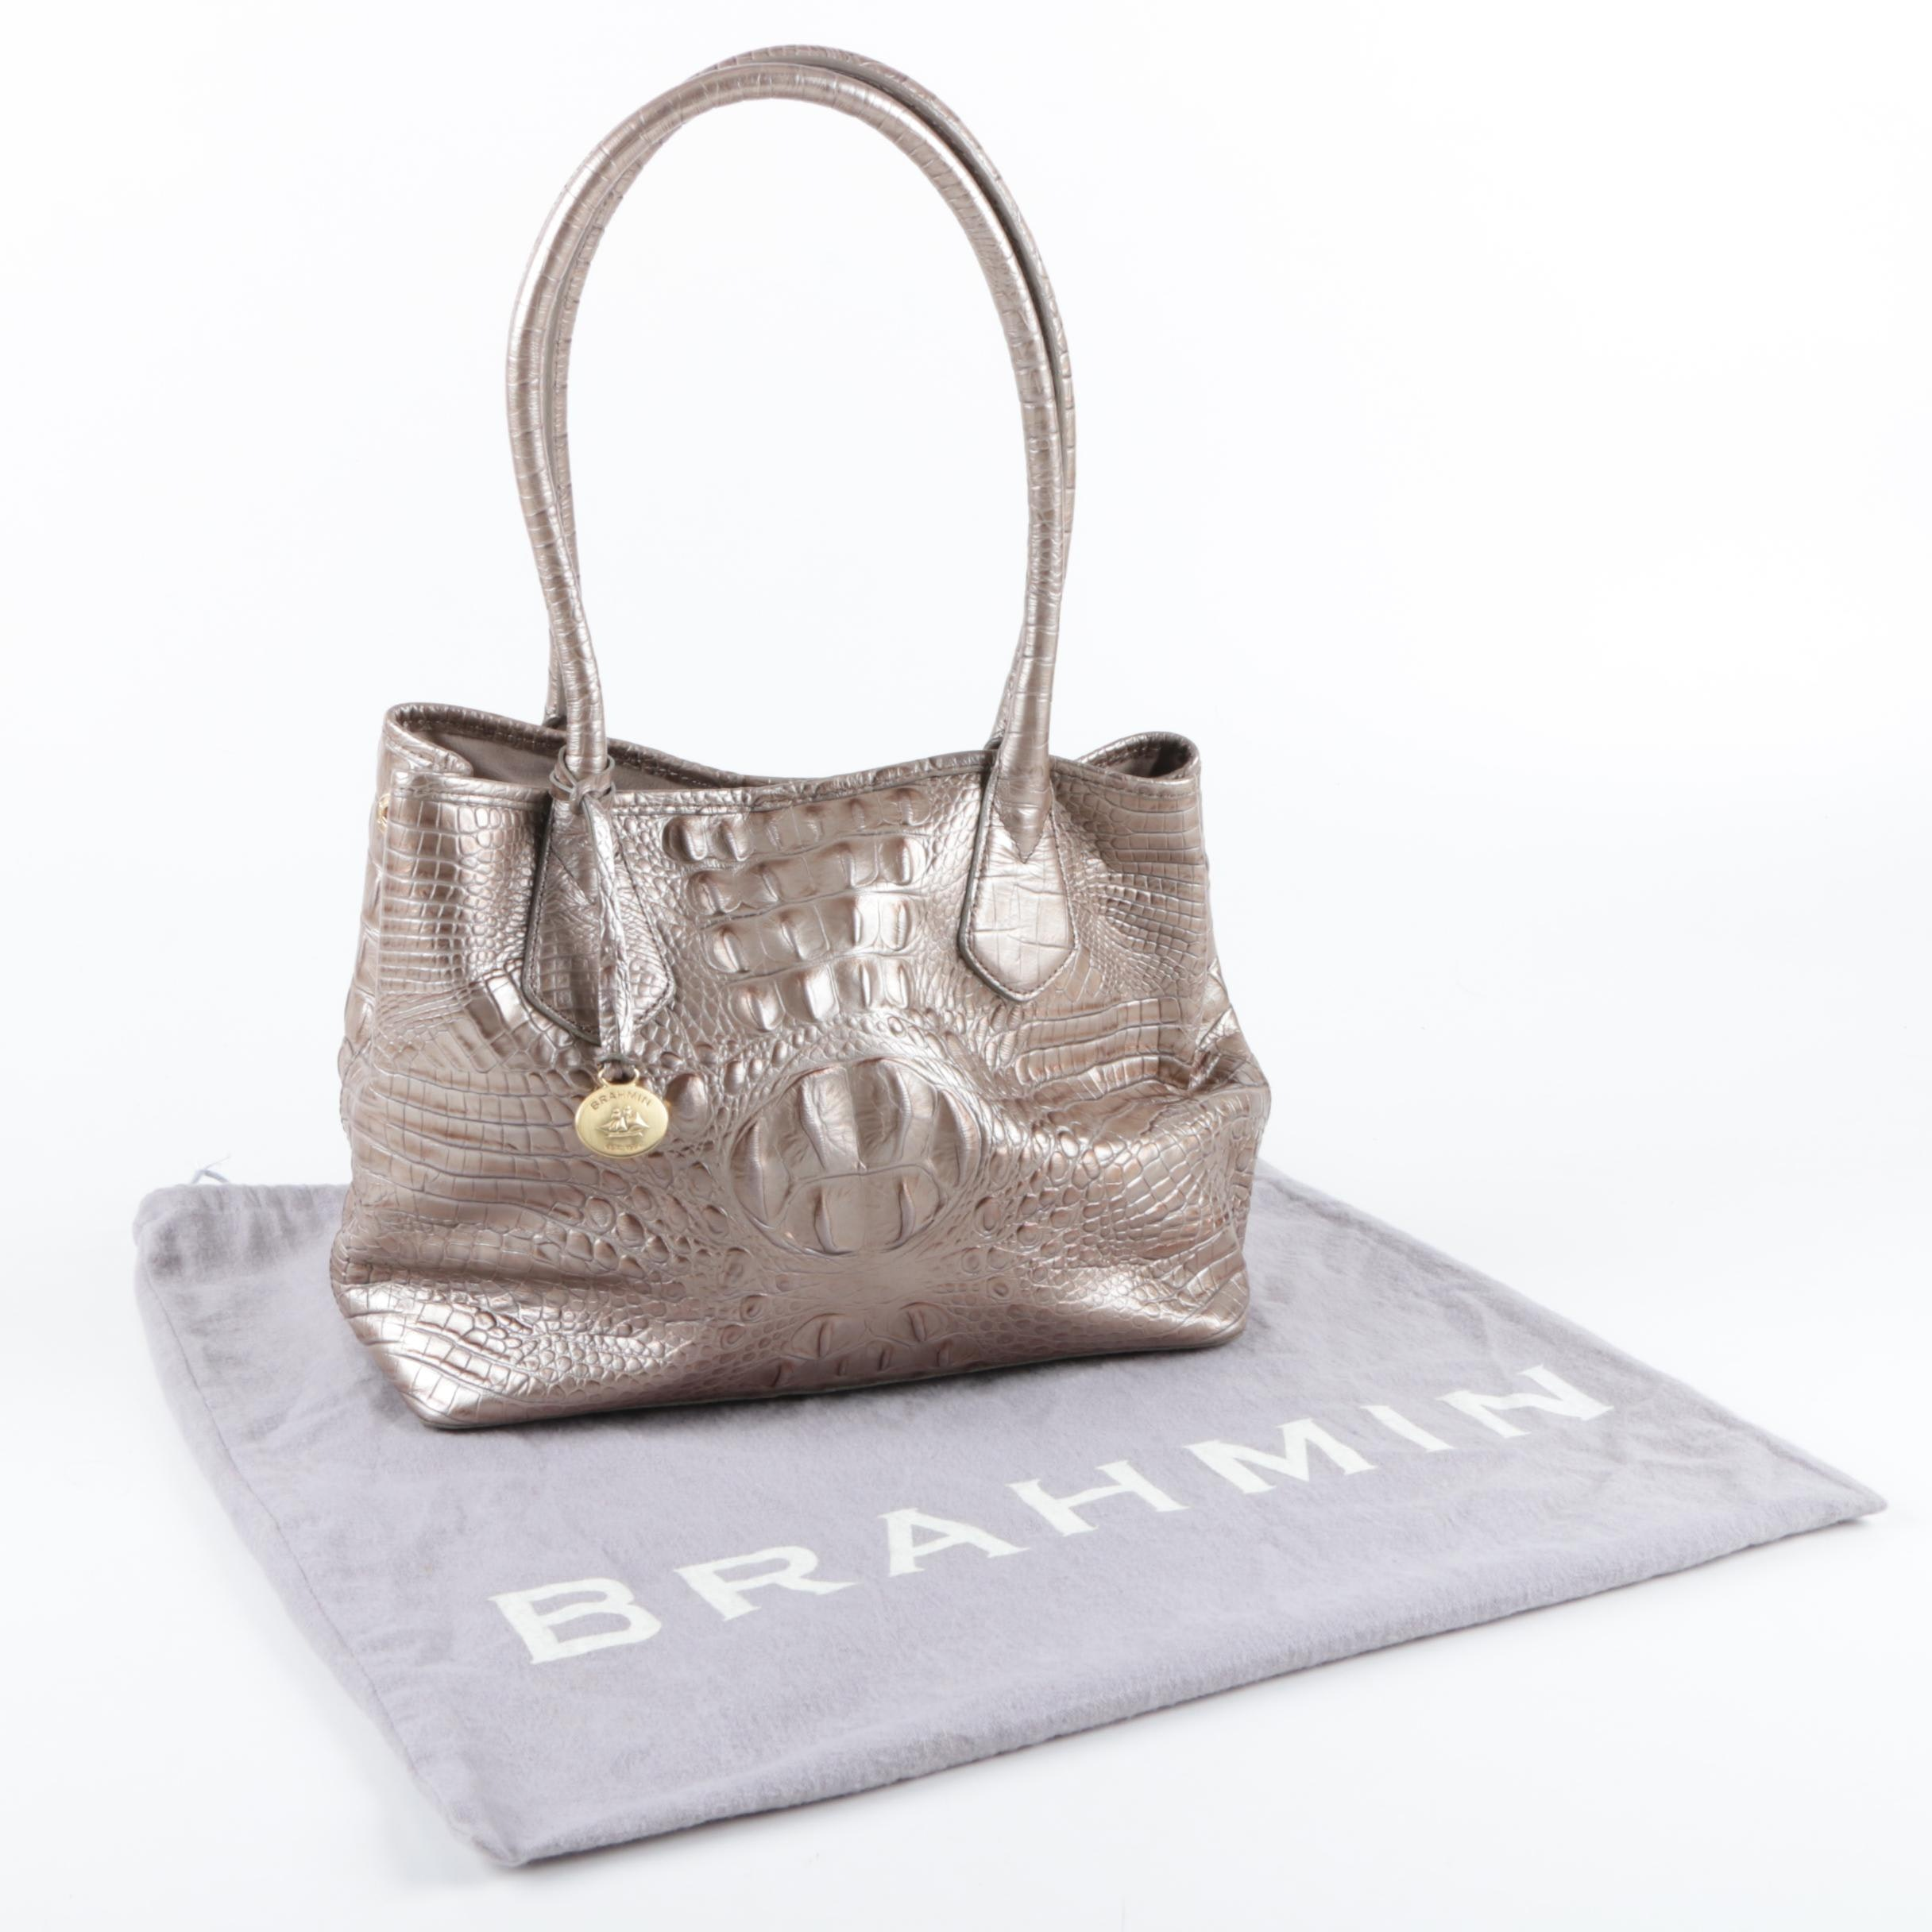 Brahmin Hornback Embossed Leather Handbag